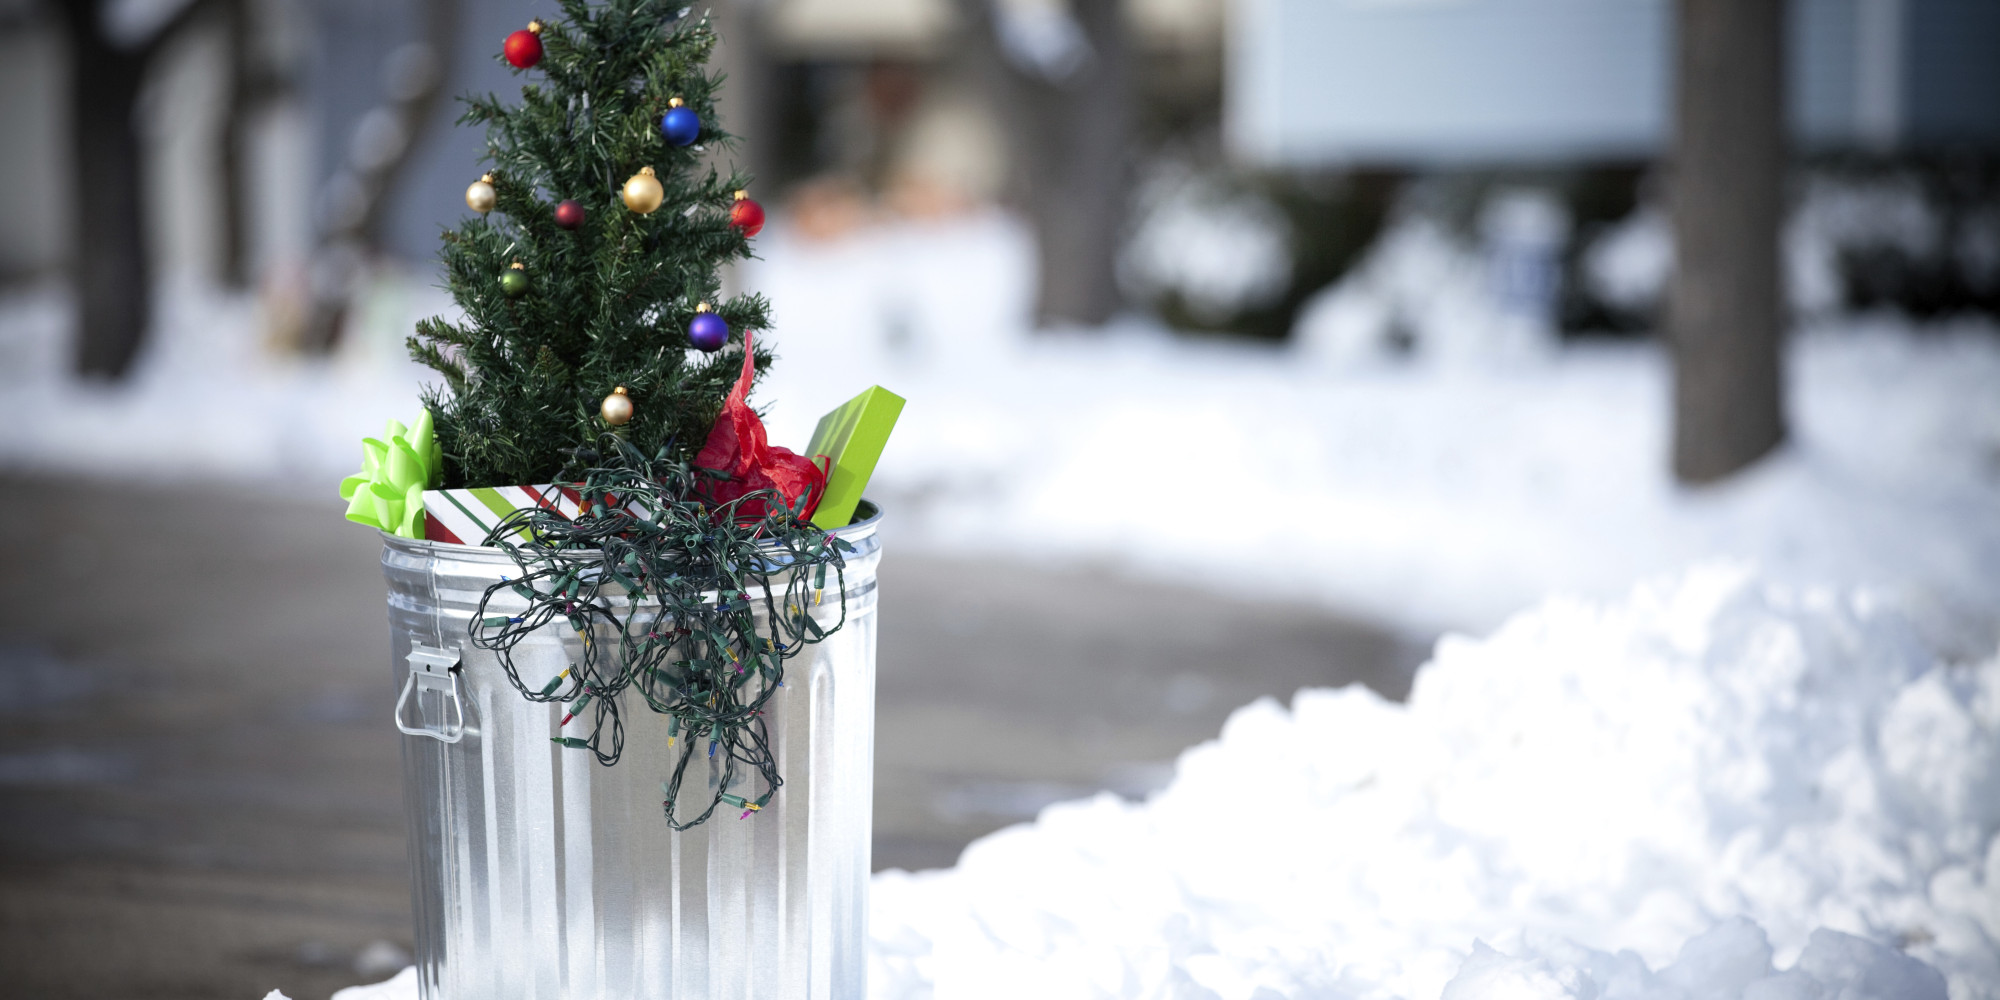 Taking Down Holiday Decorations | HuffPost